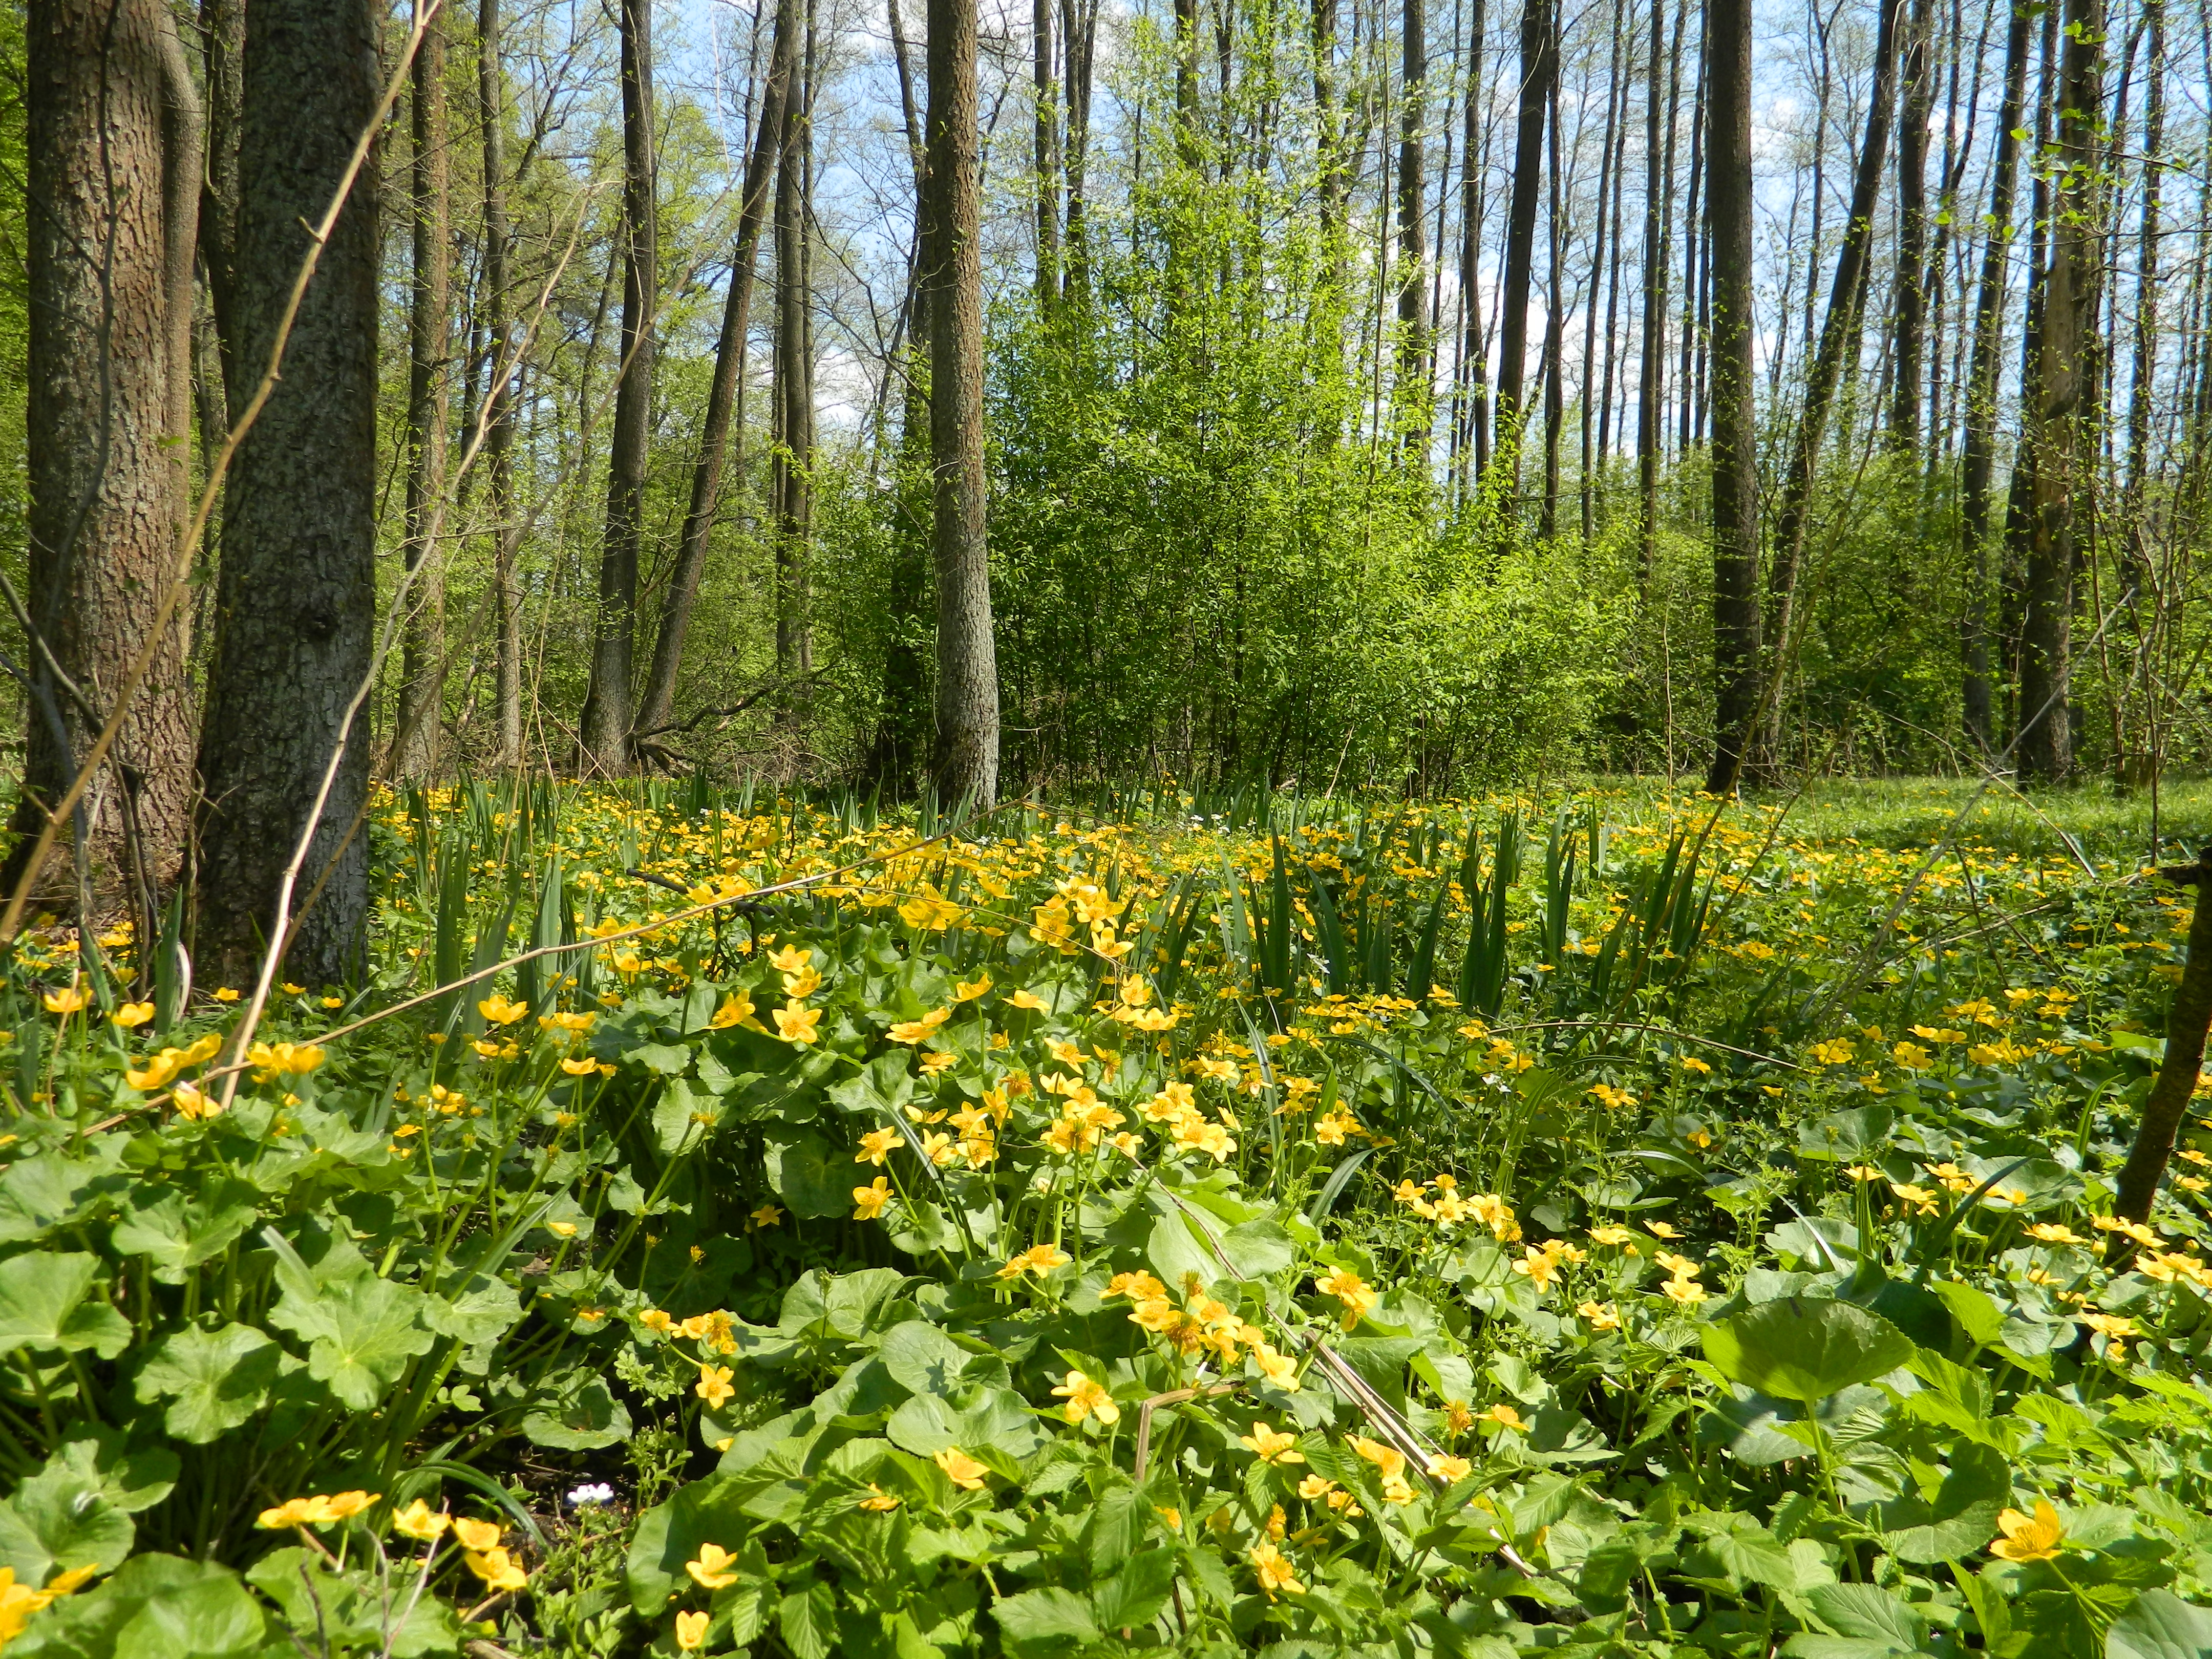 A spring forest.